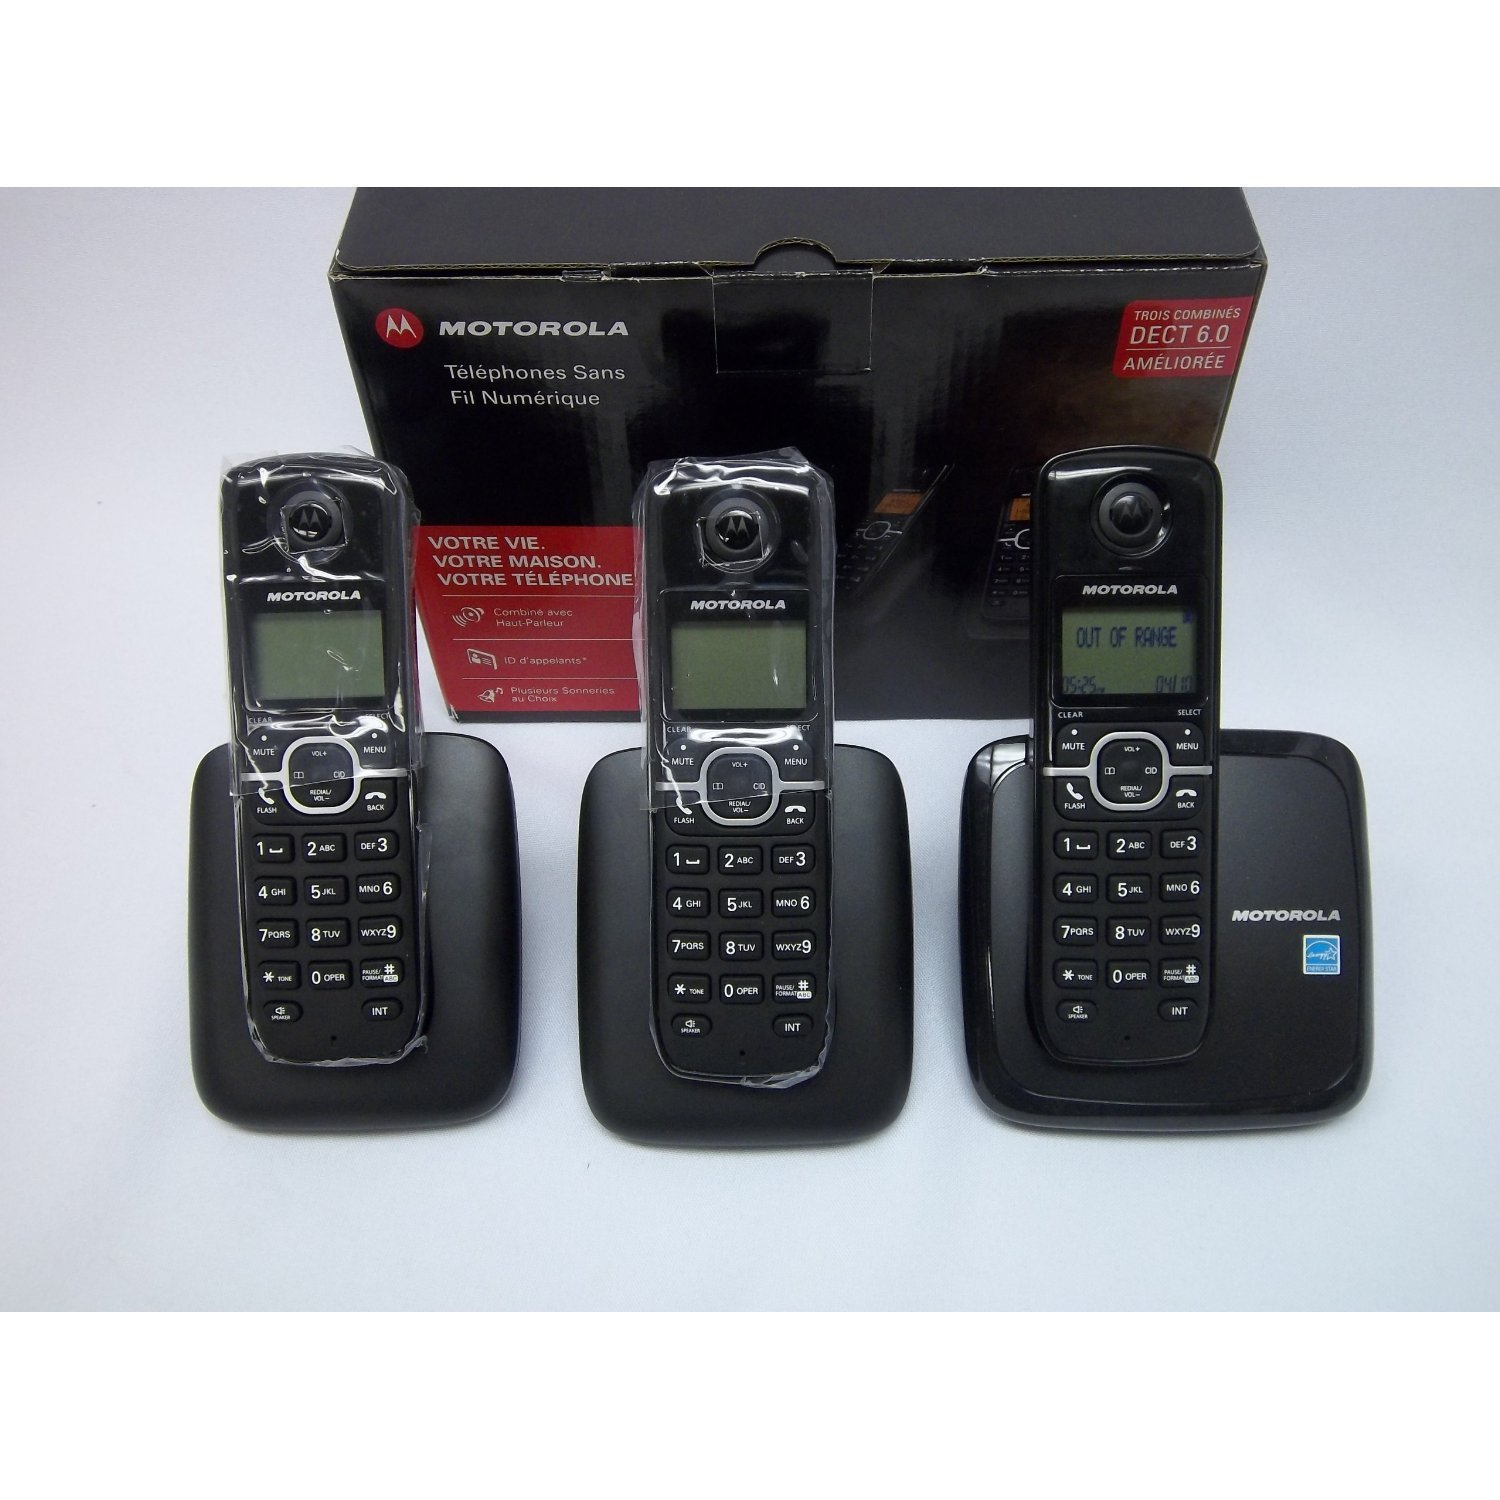 NEW! Motorola Digital Cordless Phone L603M With 3 Handsets